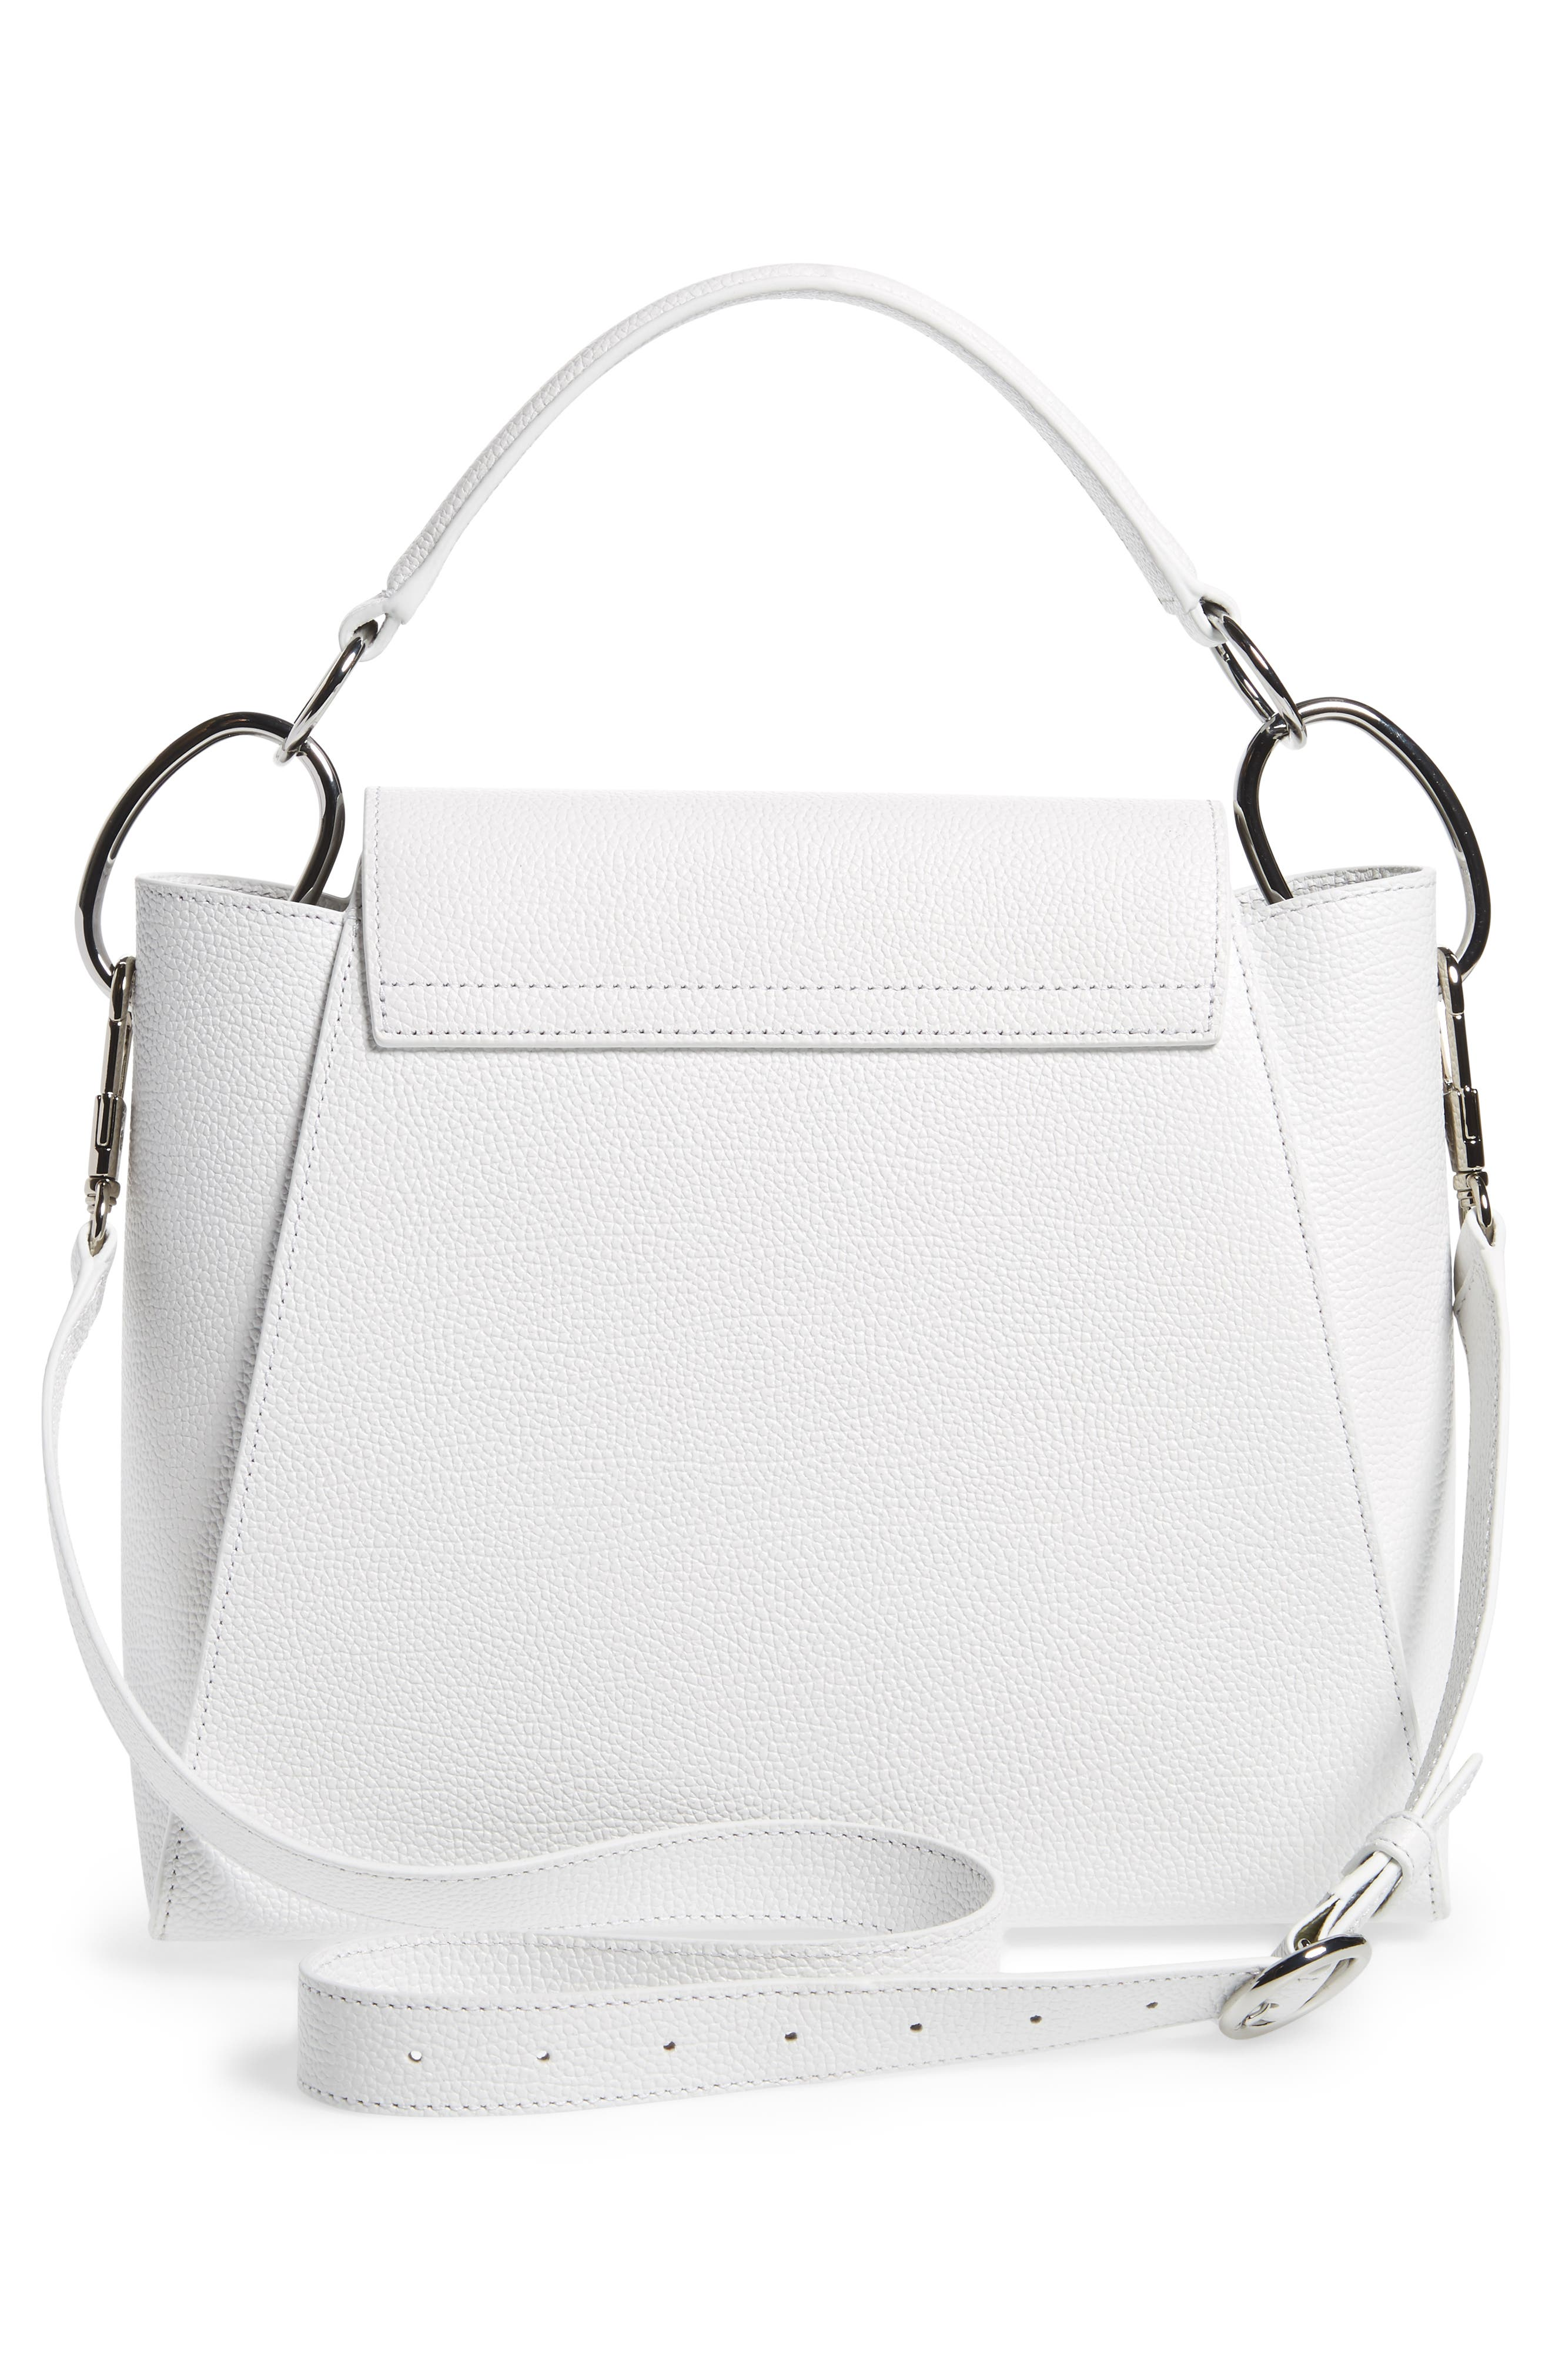 Leigh Top Handle Leather Satchel,                             Alternate thumbnail 3, color,                             100